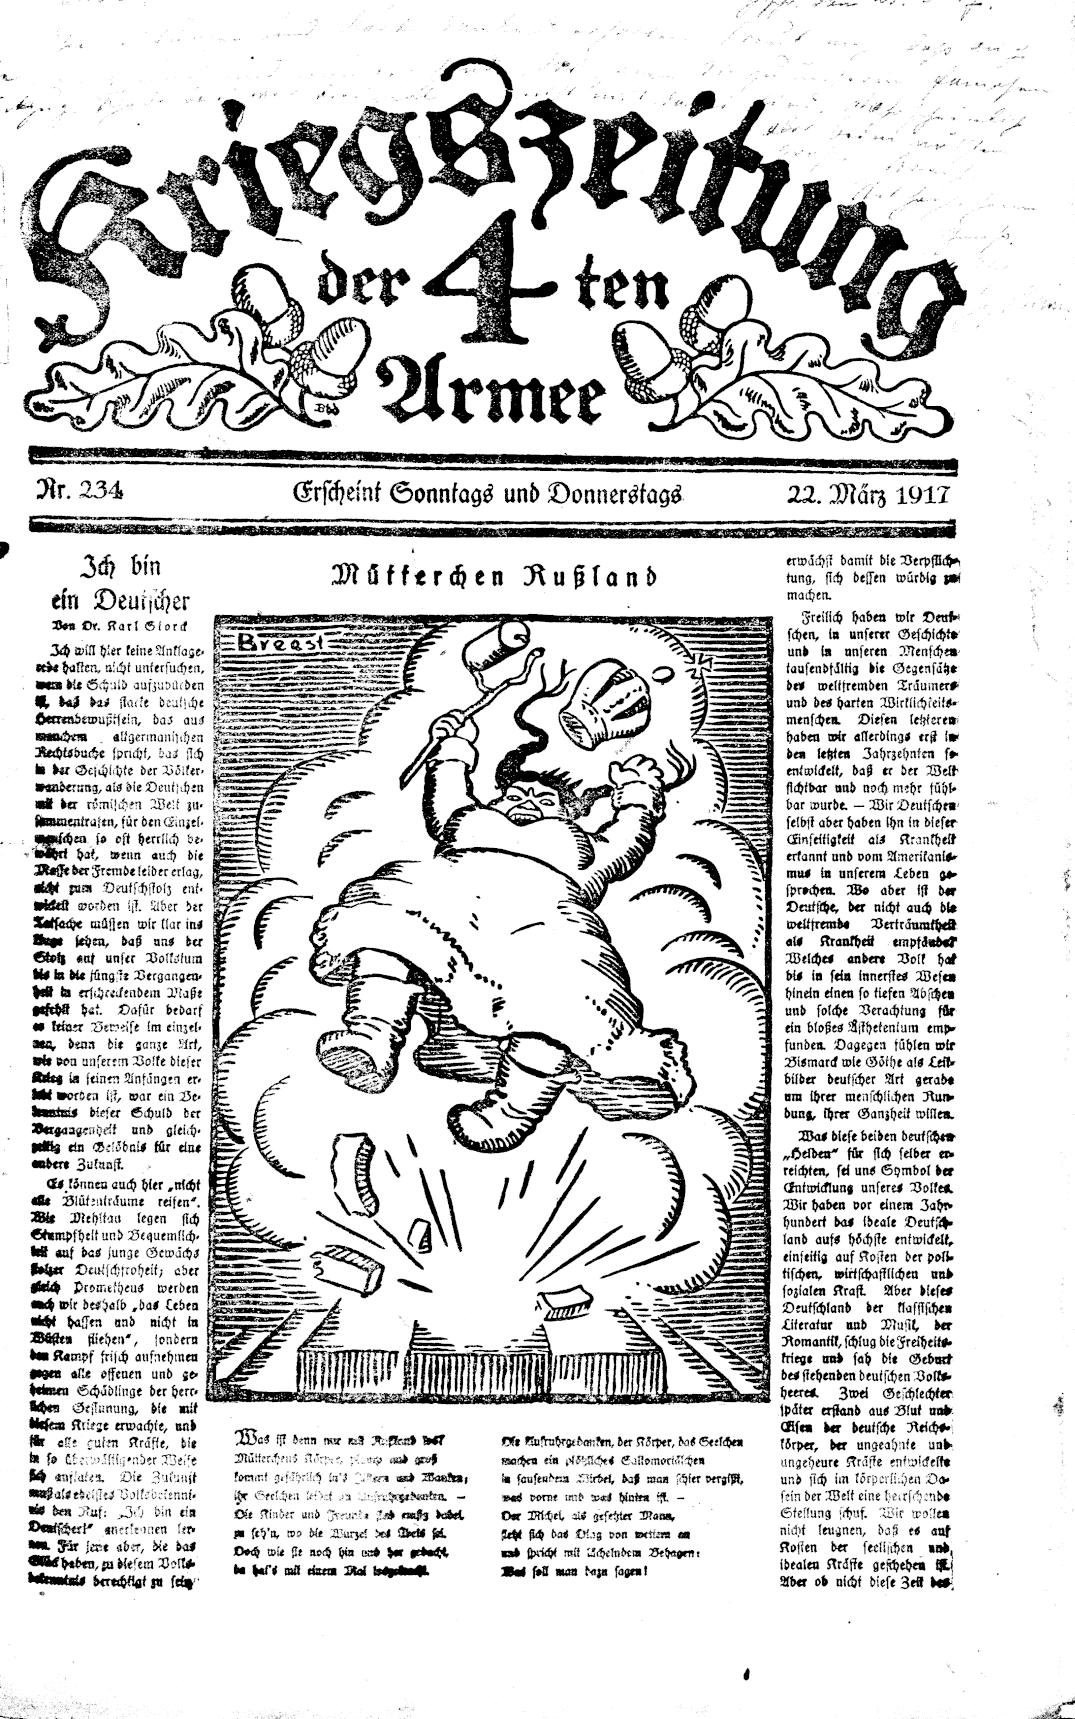 Kriegszeitung der 4. Armee: caricature of mother Russia (Collection National Library Austria)